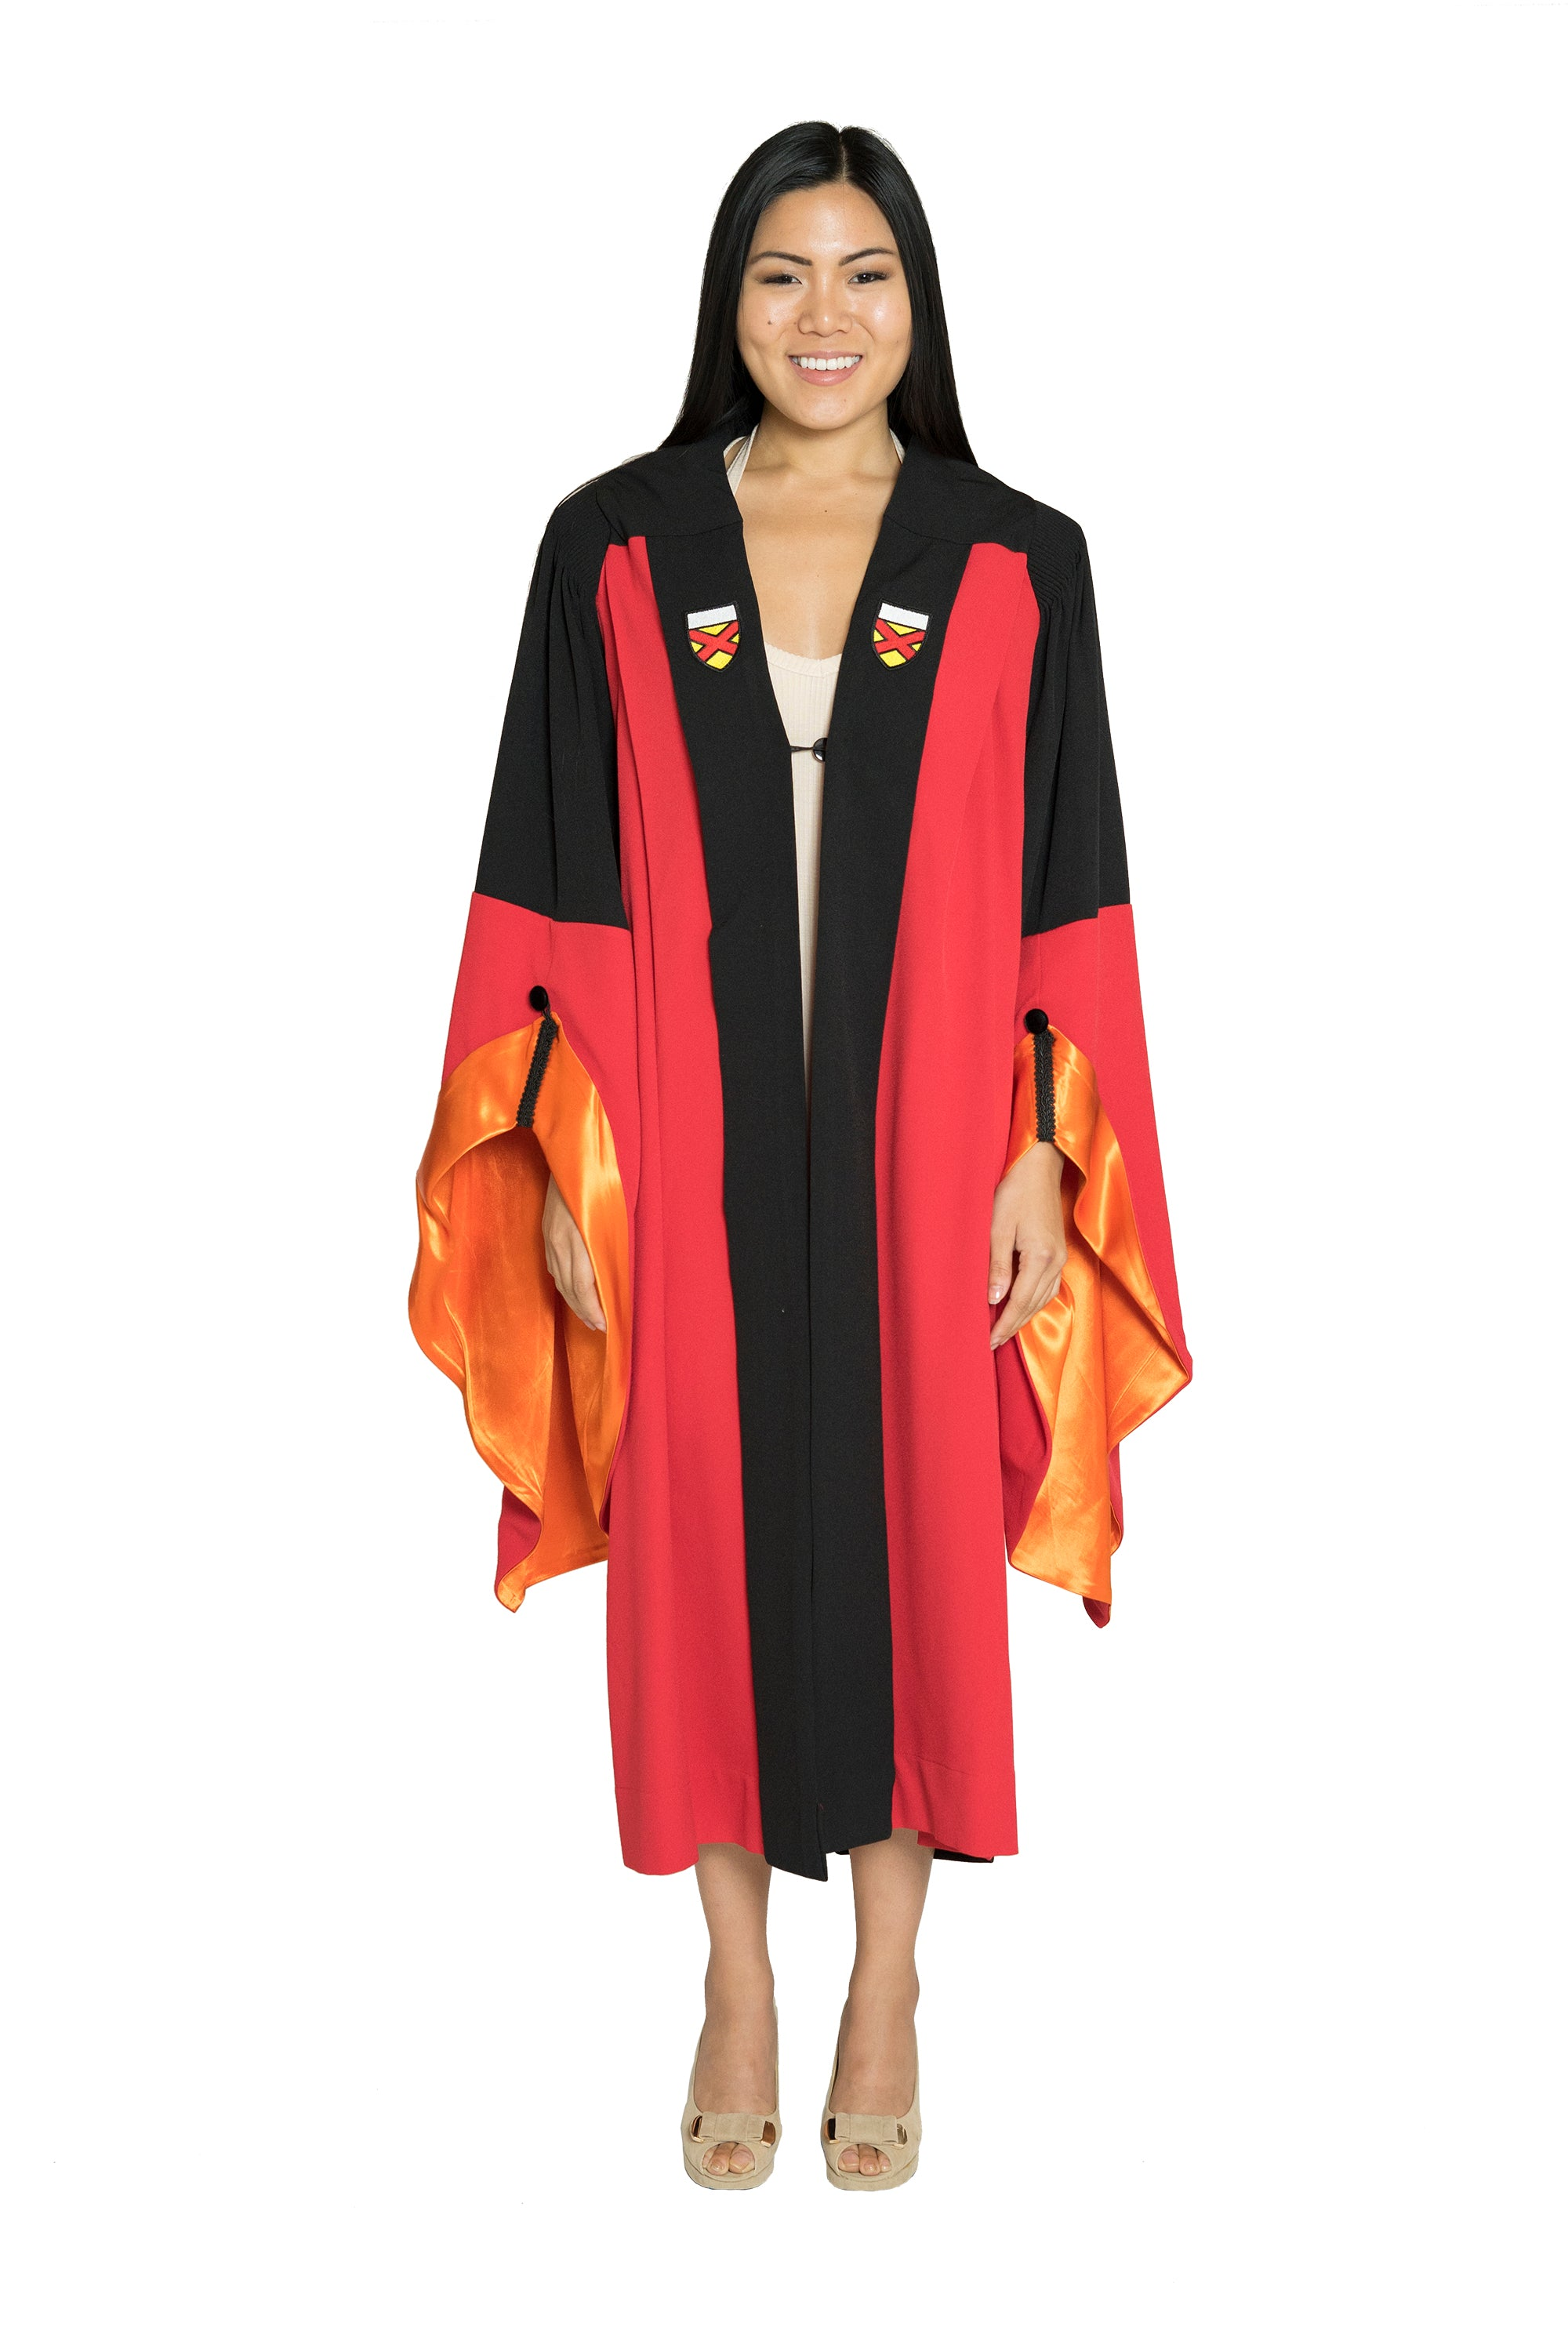 Stanford University Doctoral Traditional Gown - Engineering PhD Gown